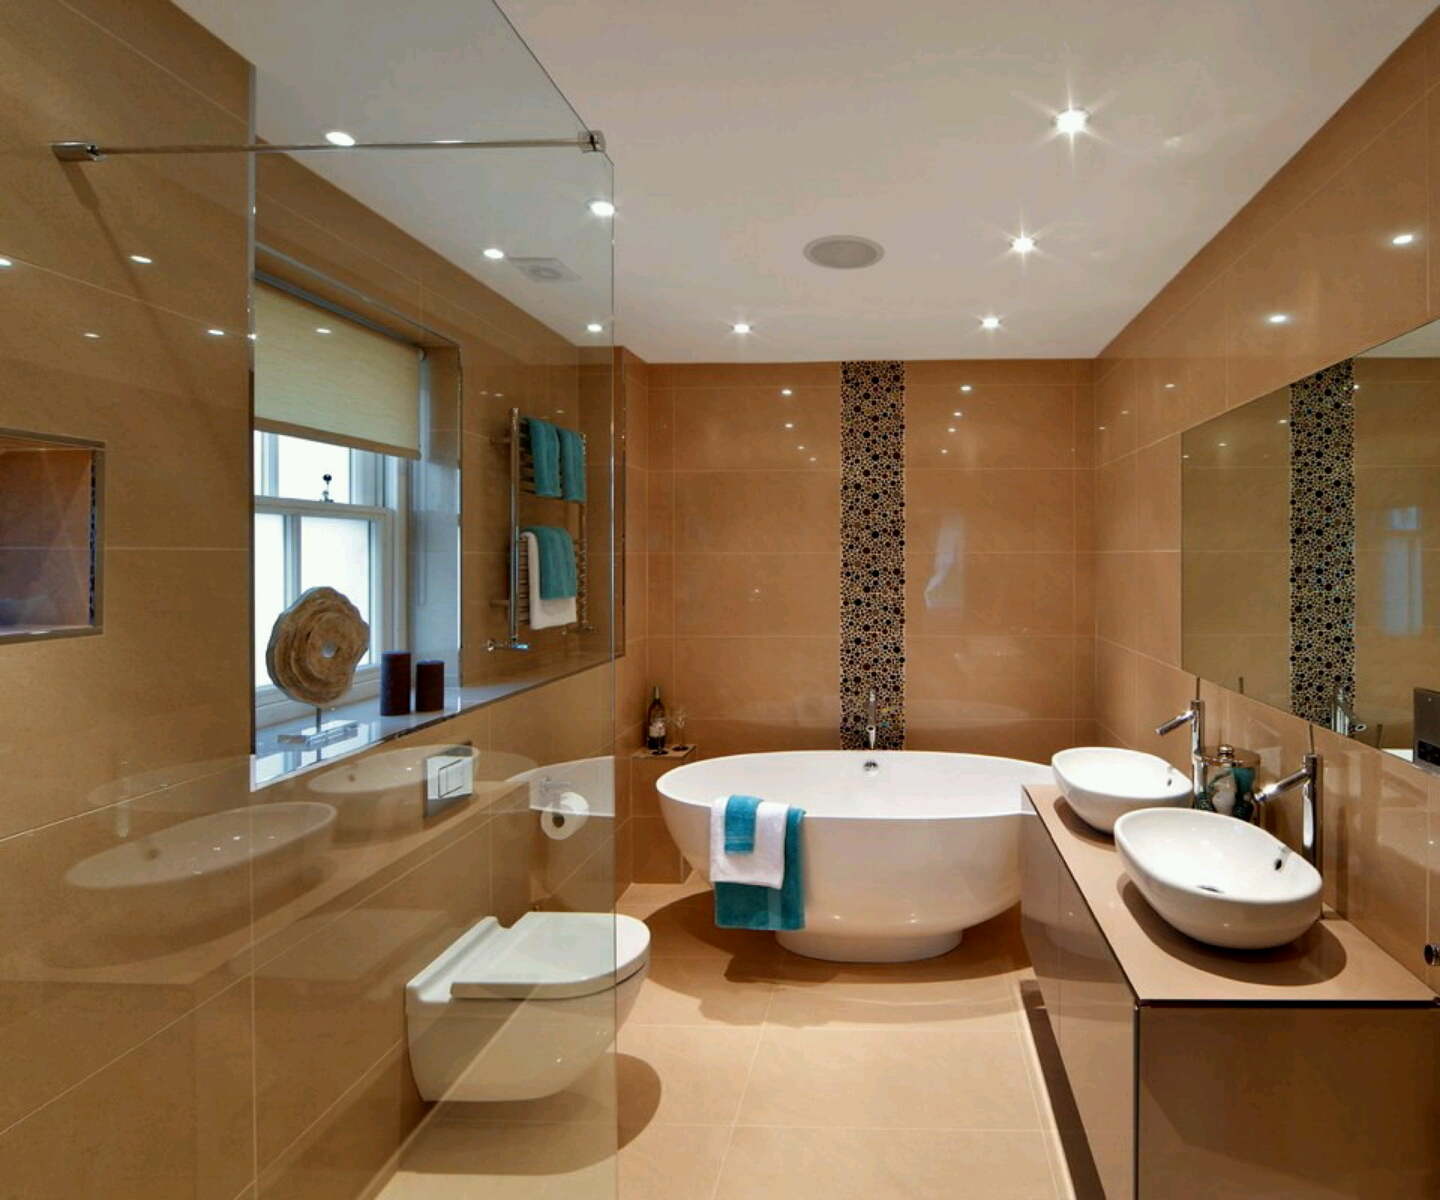 25 small but luxury bathroom design ideas for Bathroom design ideas